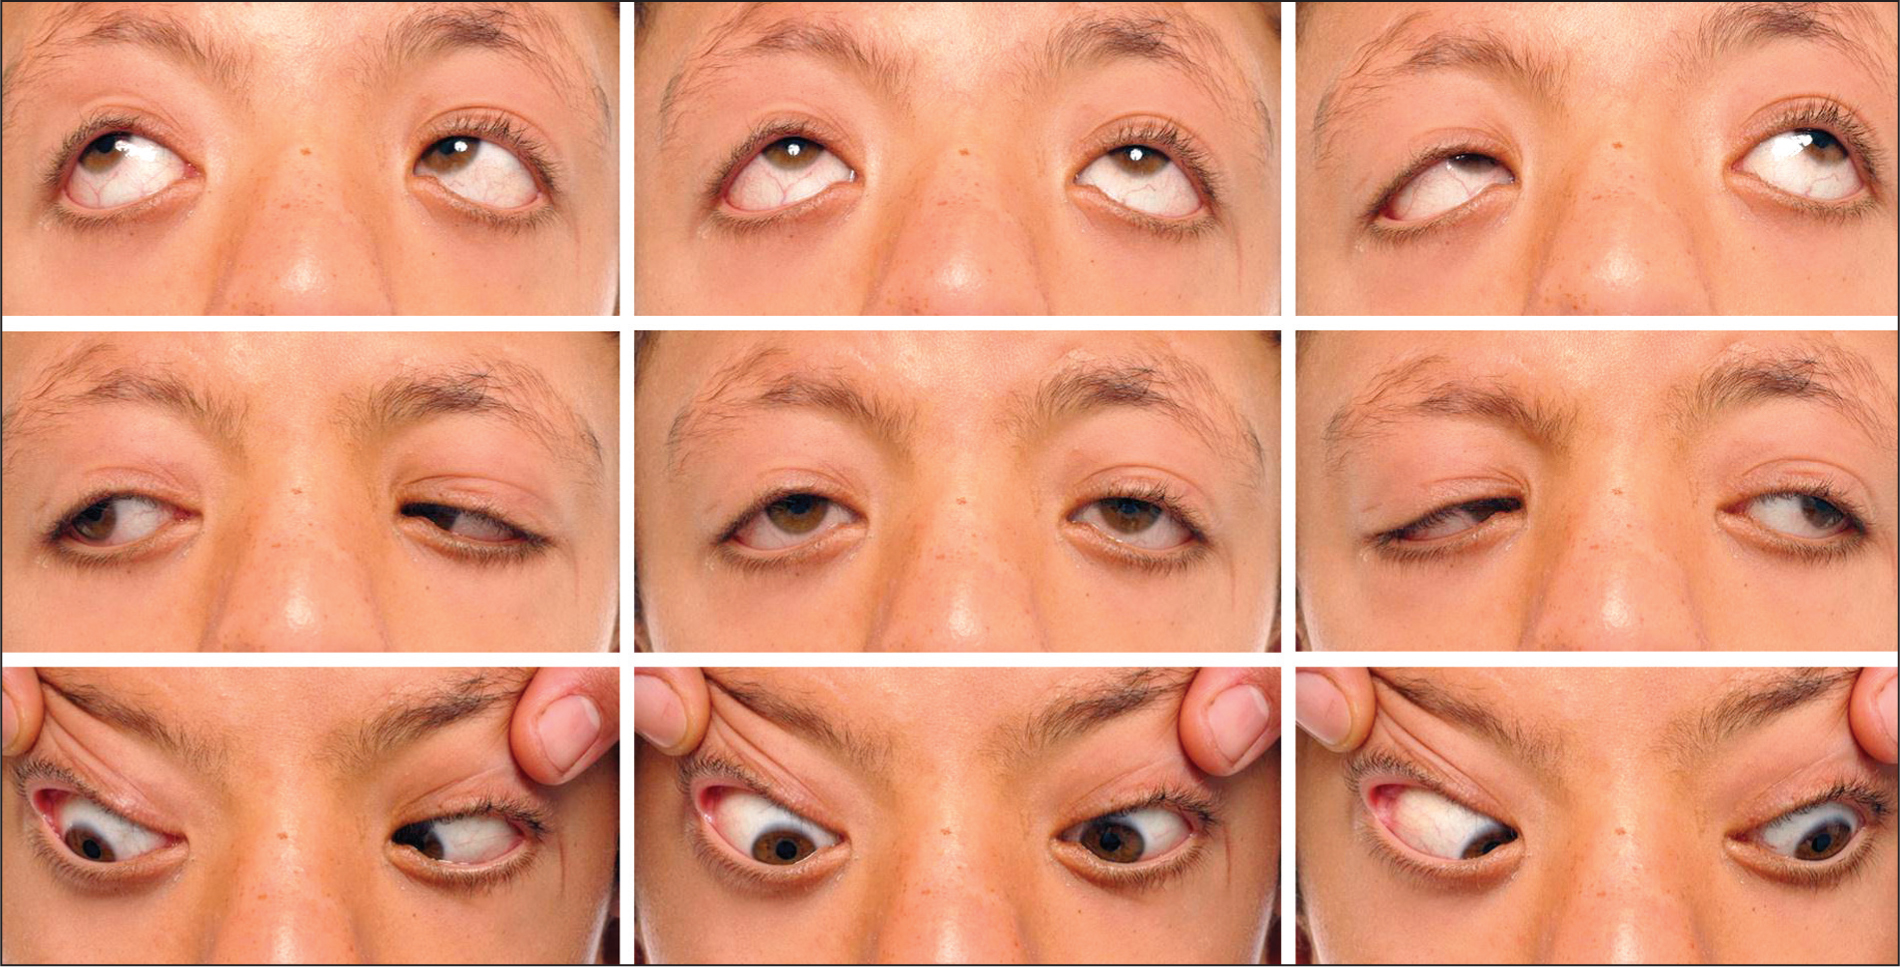 Bilateral Duane-Like Synkinesis in a Patient with Noonan Syndrome Showing Globe Retraction and Narrowing of the Palpebral Fissure in Adduction with Mild Restriction of Abduction in Both Eyes.